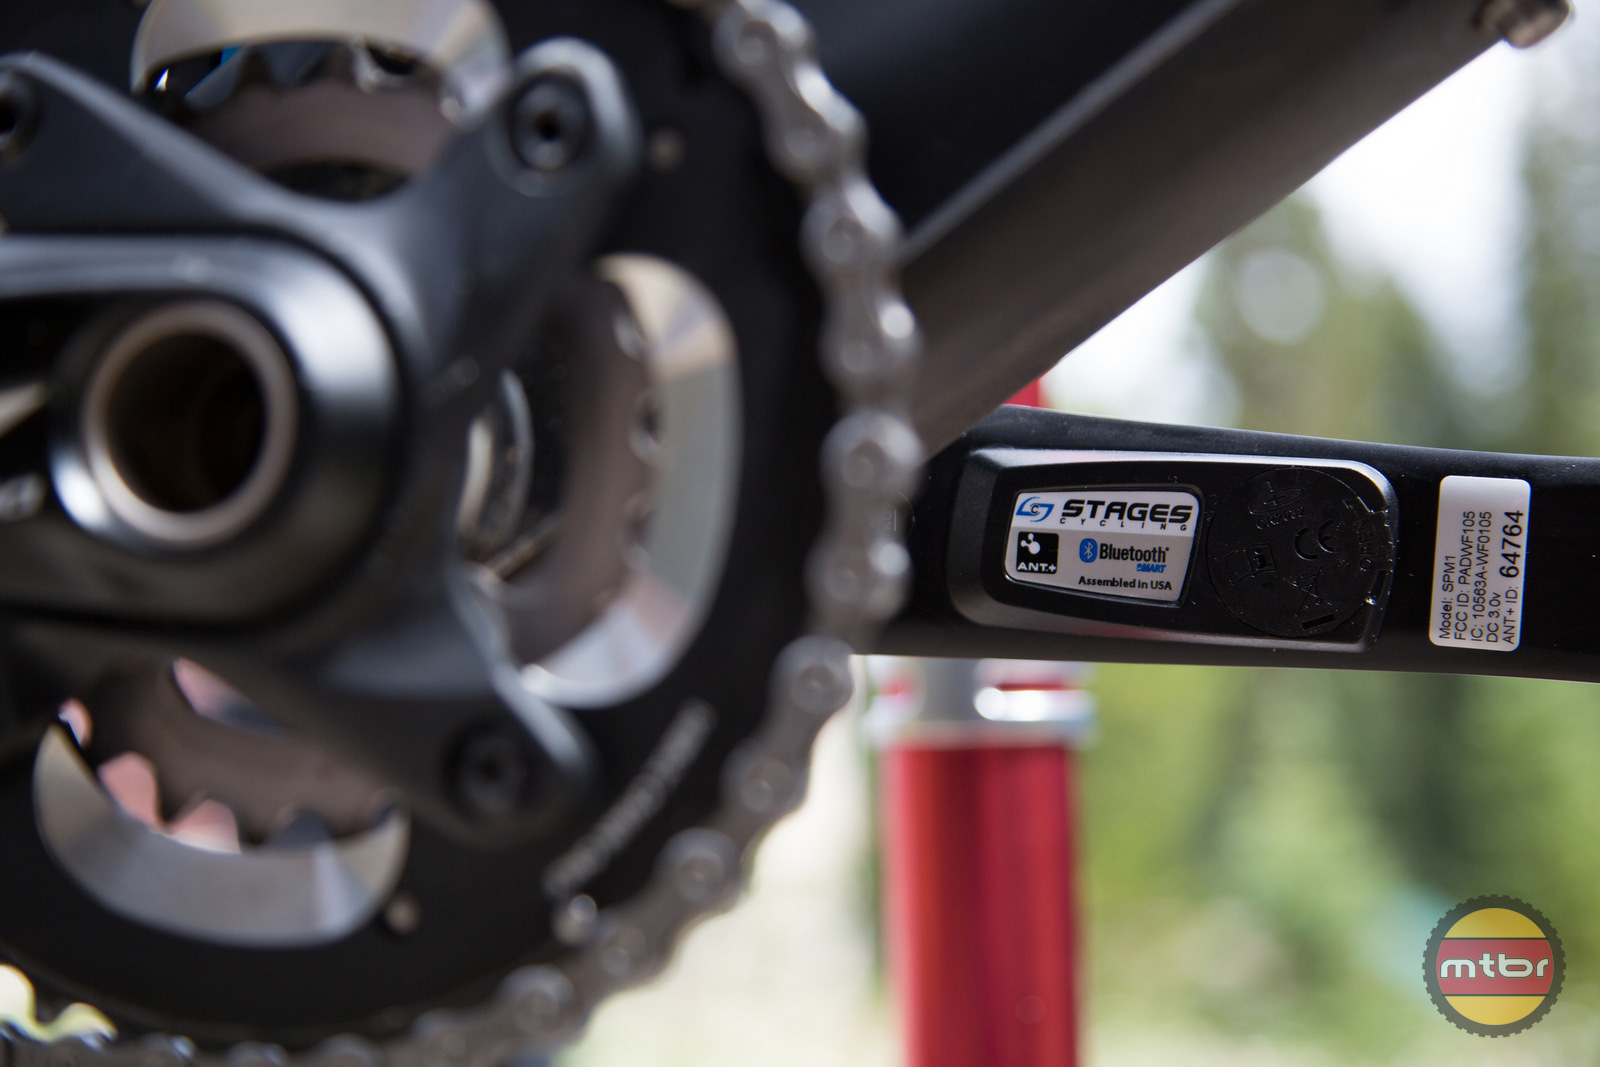 Stages Power Meter on Bike